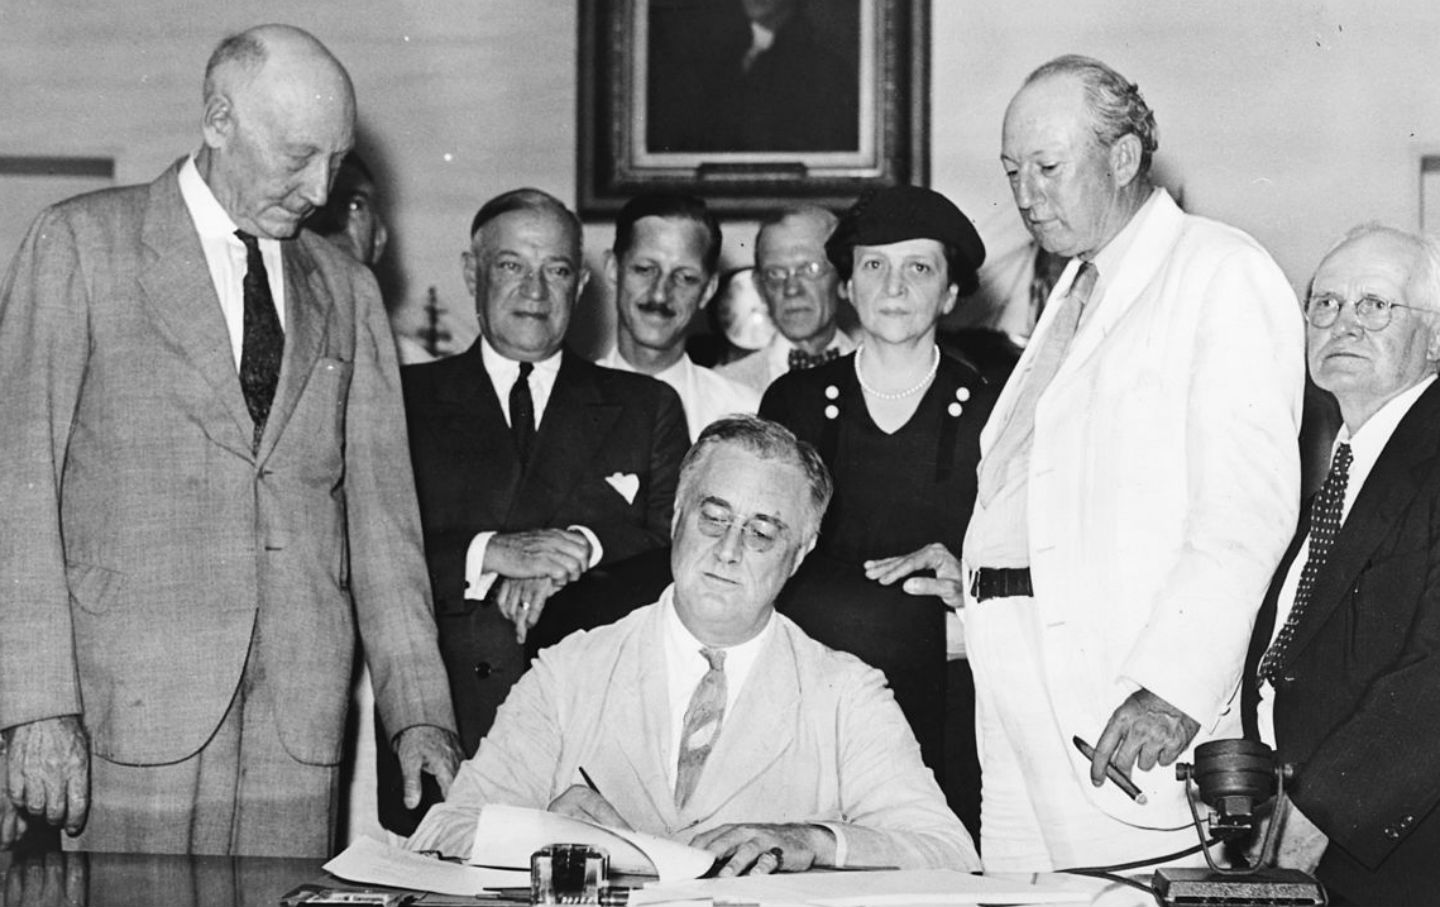 roosevelt_signing_social_security_act_loc_img